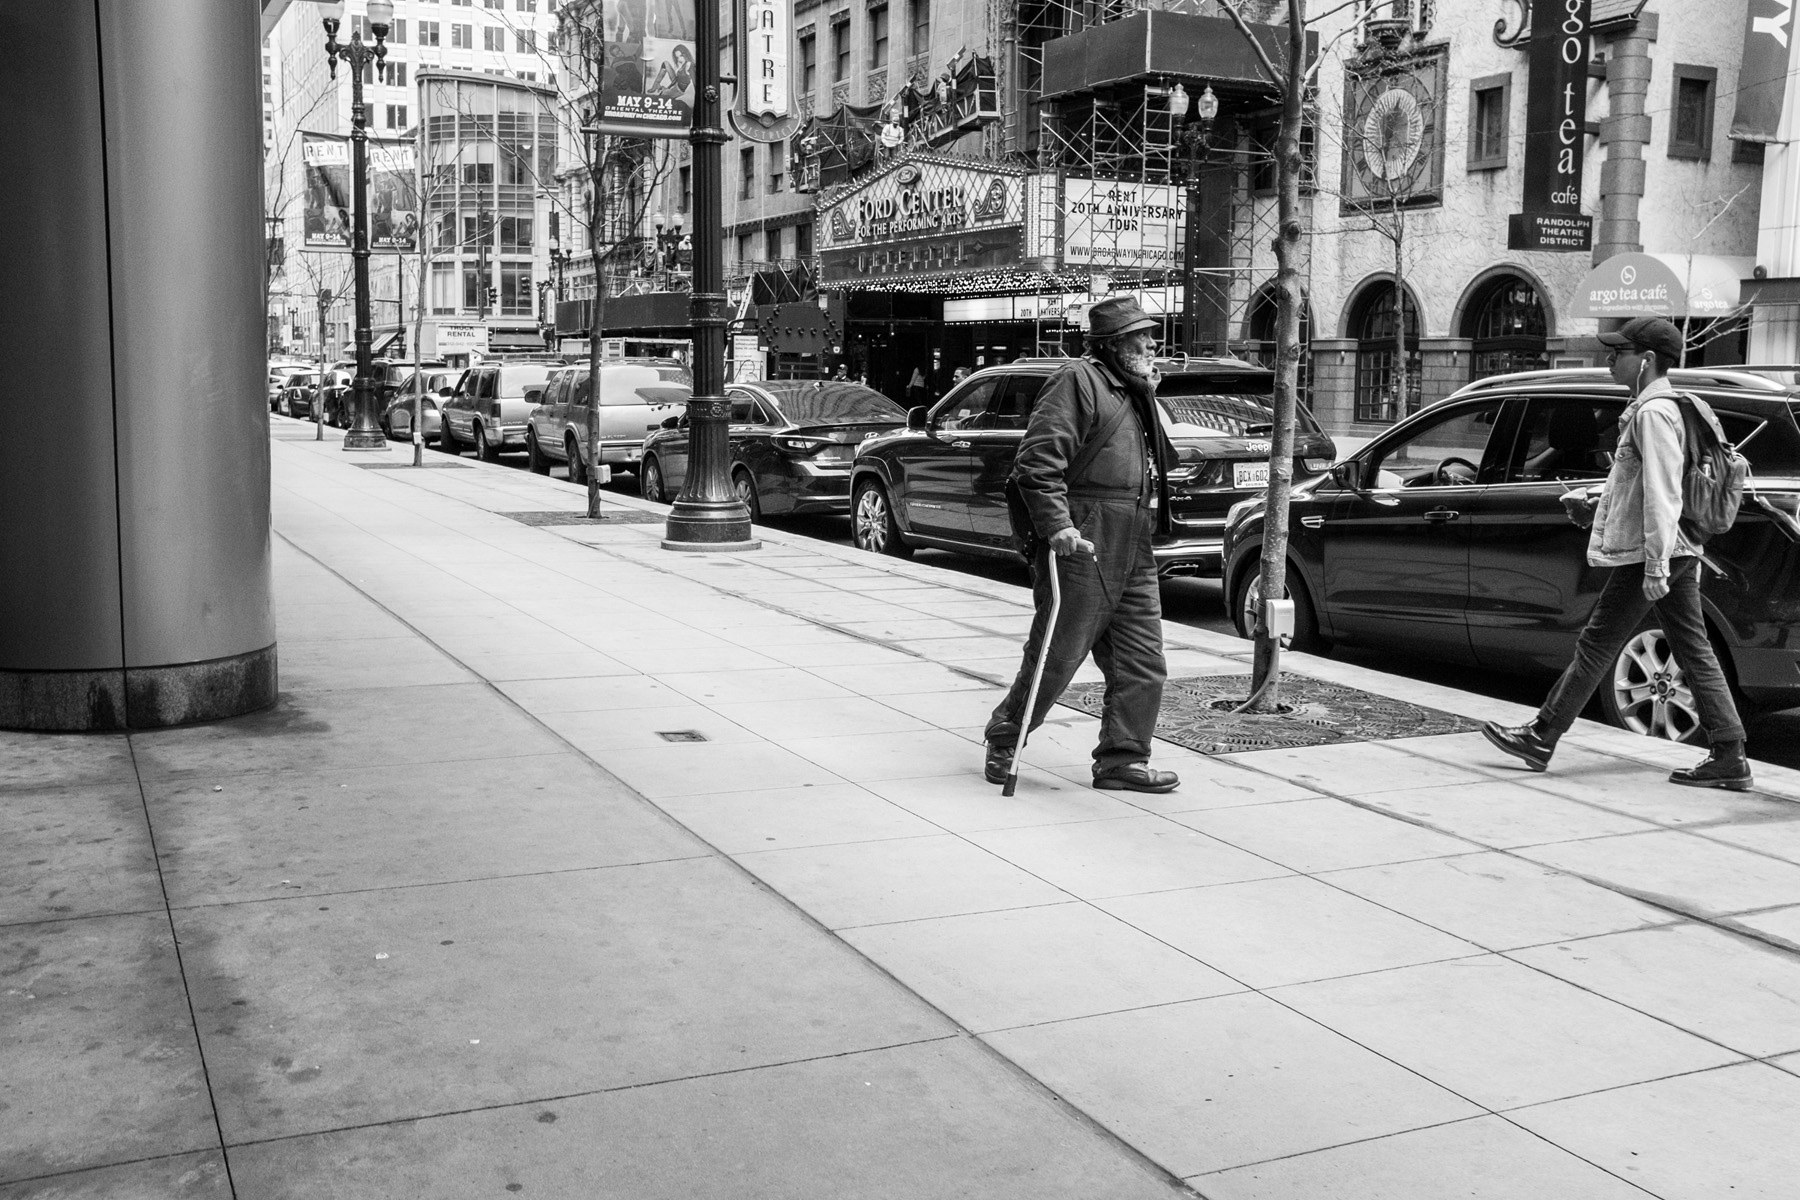 an older man bundled up walking through downtown Chicago with a cane.